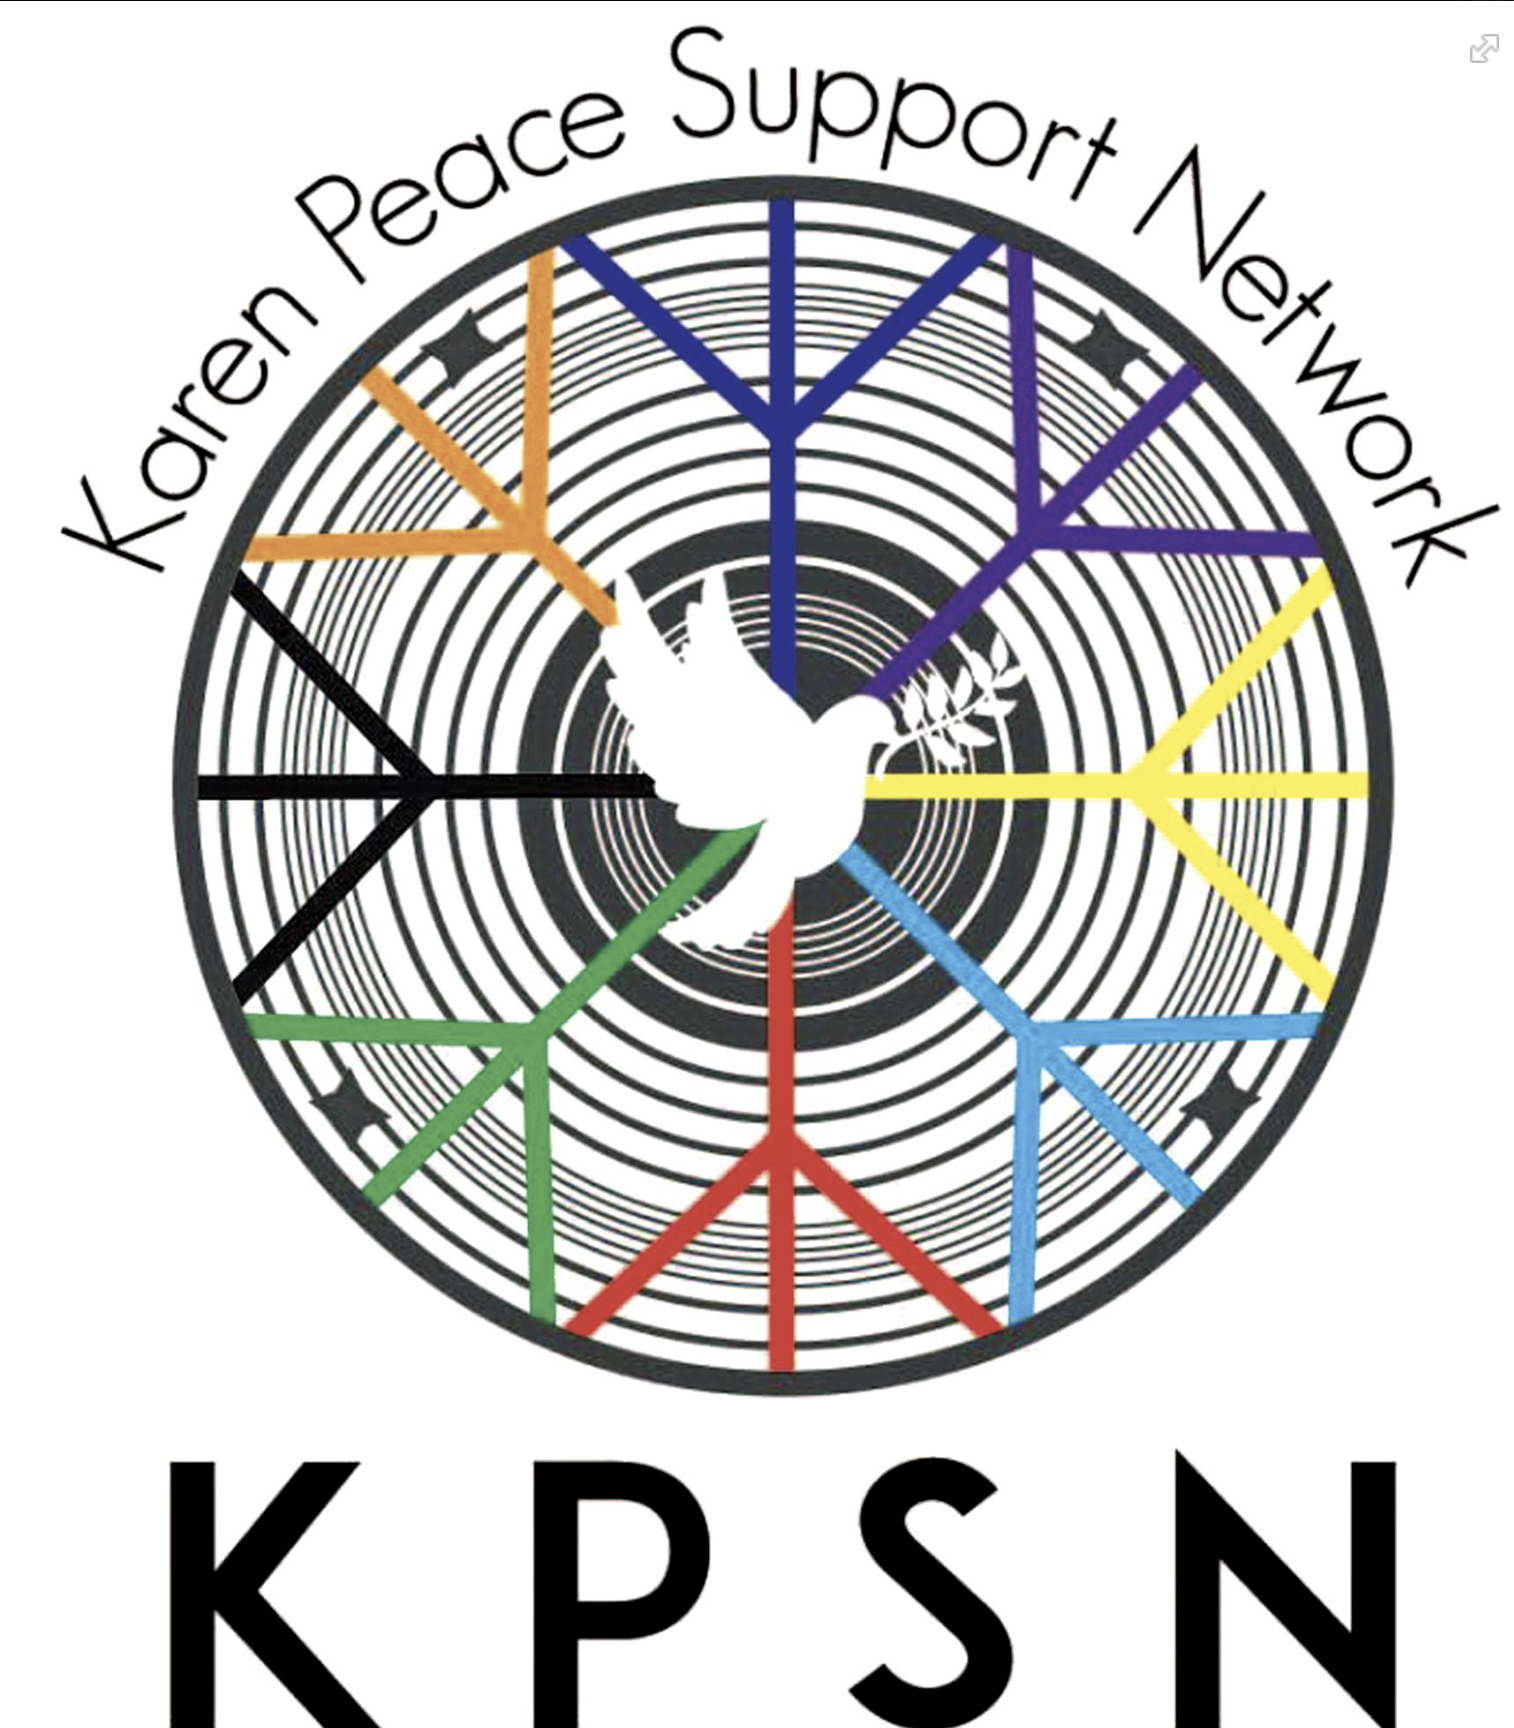 Terror from the Skies – Karen Peace Support Network briefing